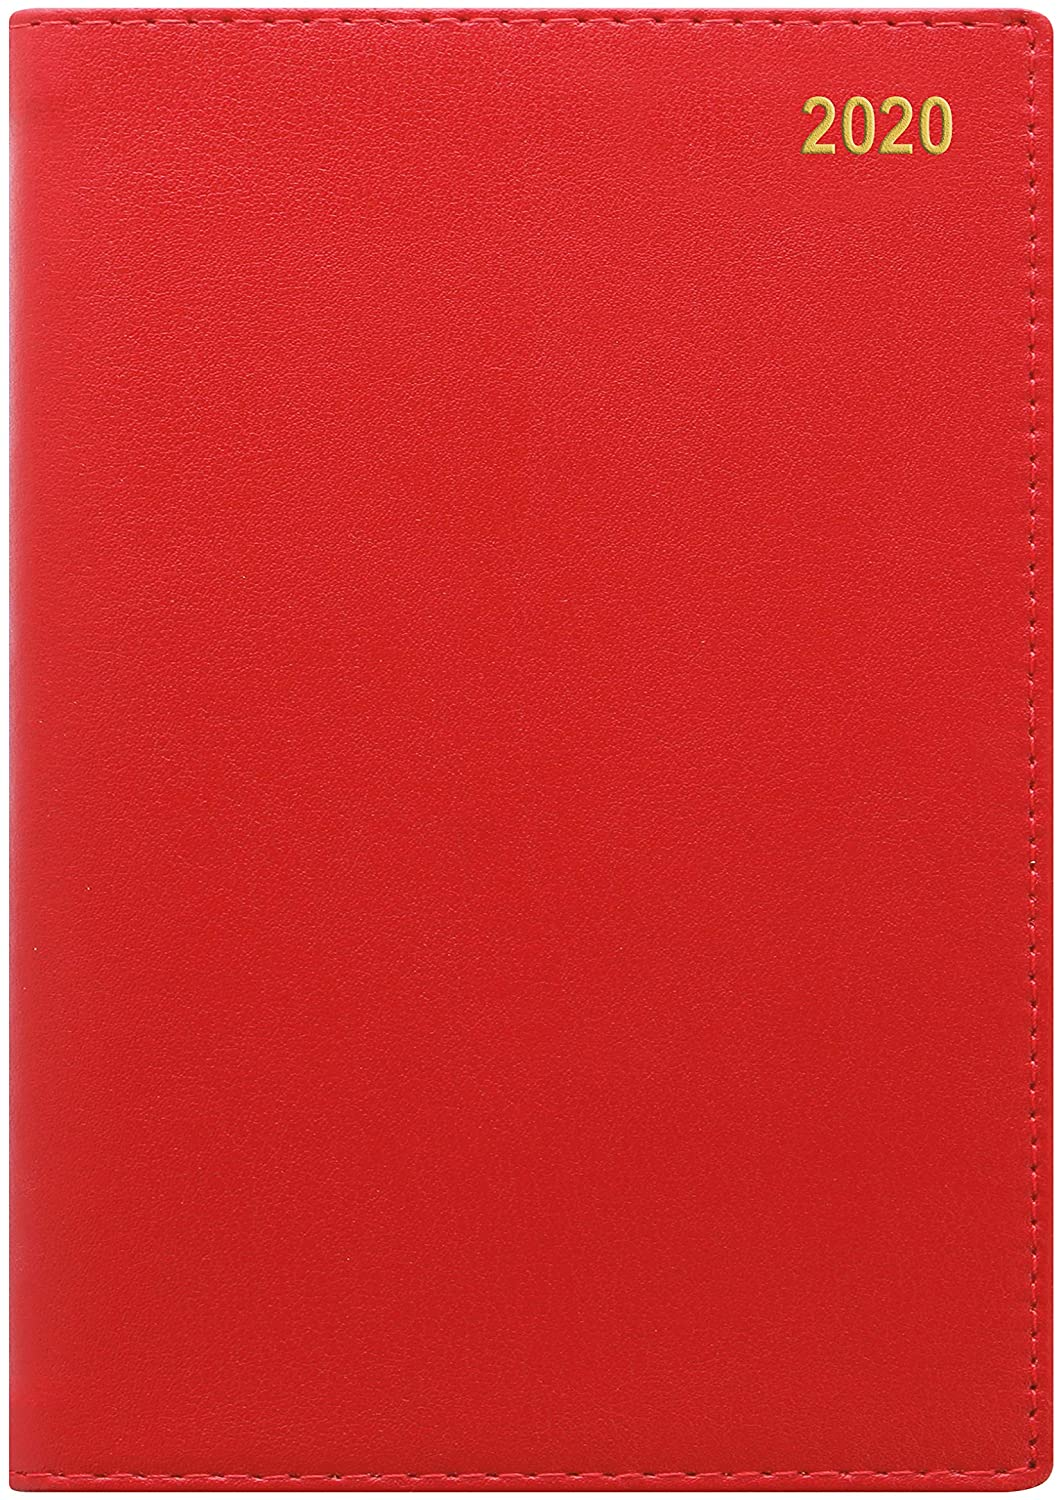 Letts Belgravia Week to View 2020 Planner, Red, 4.25 x 2.75 inches (C33ERD-20)